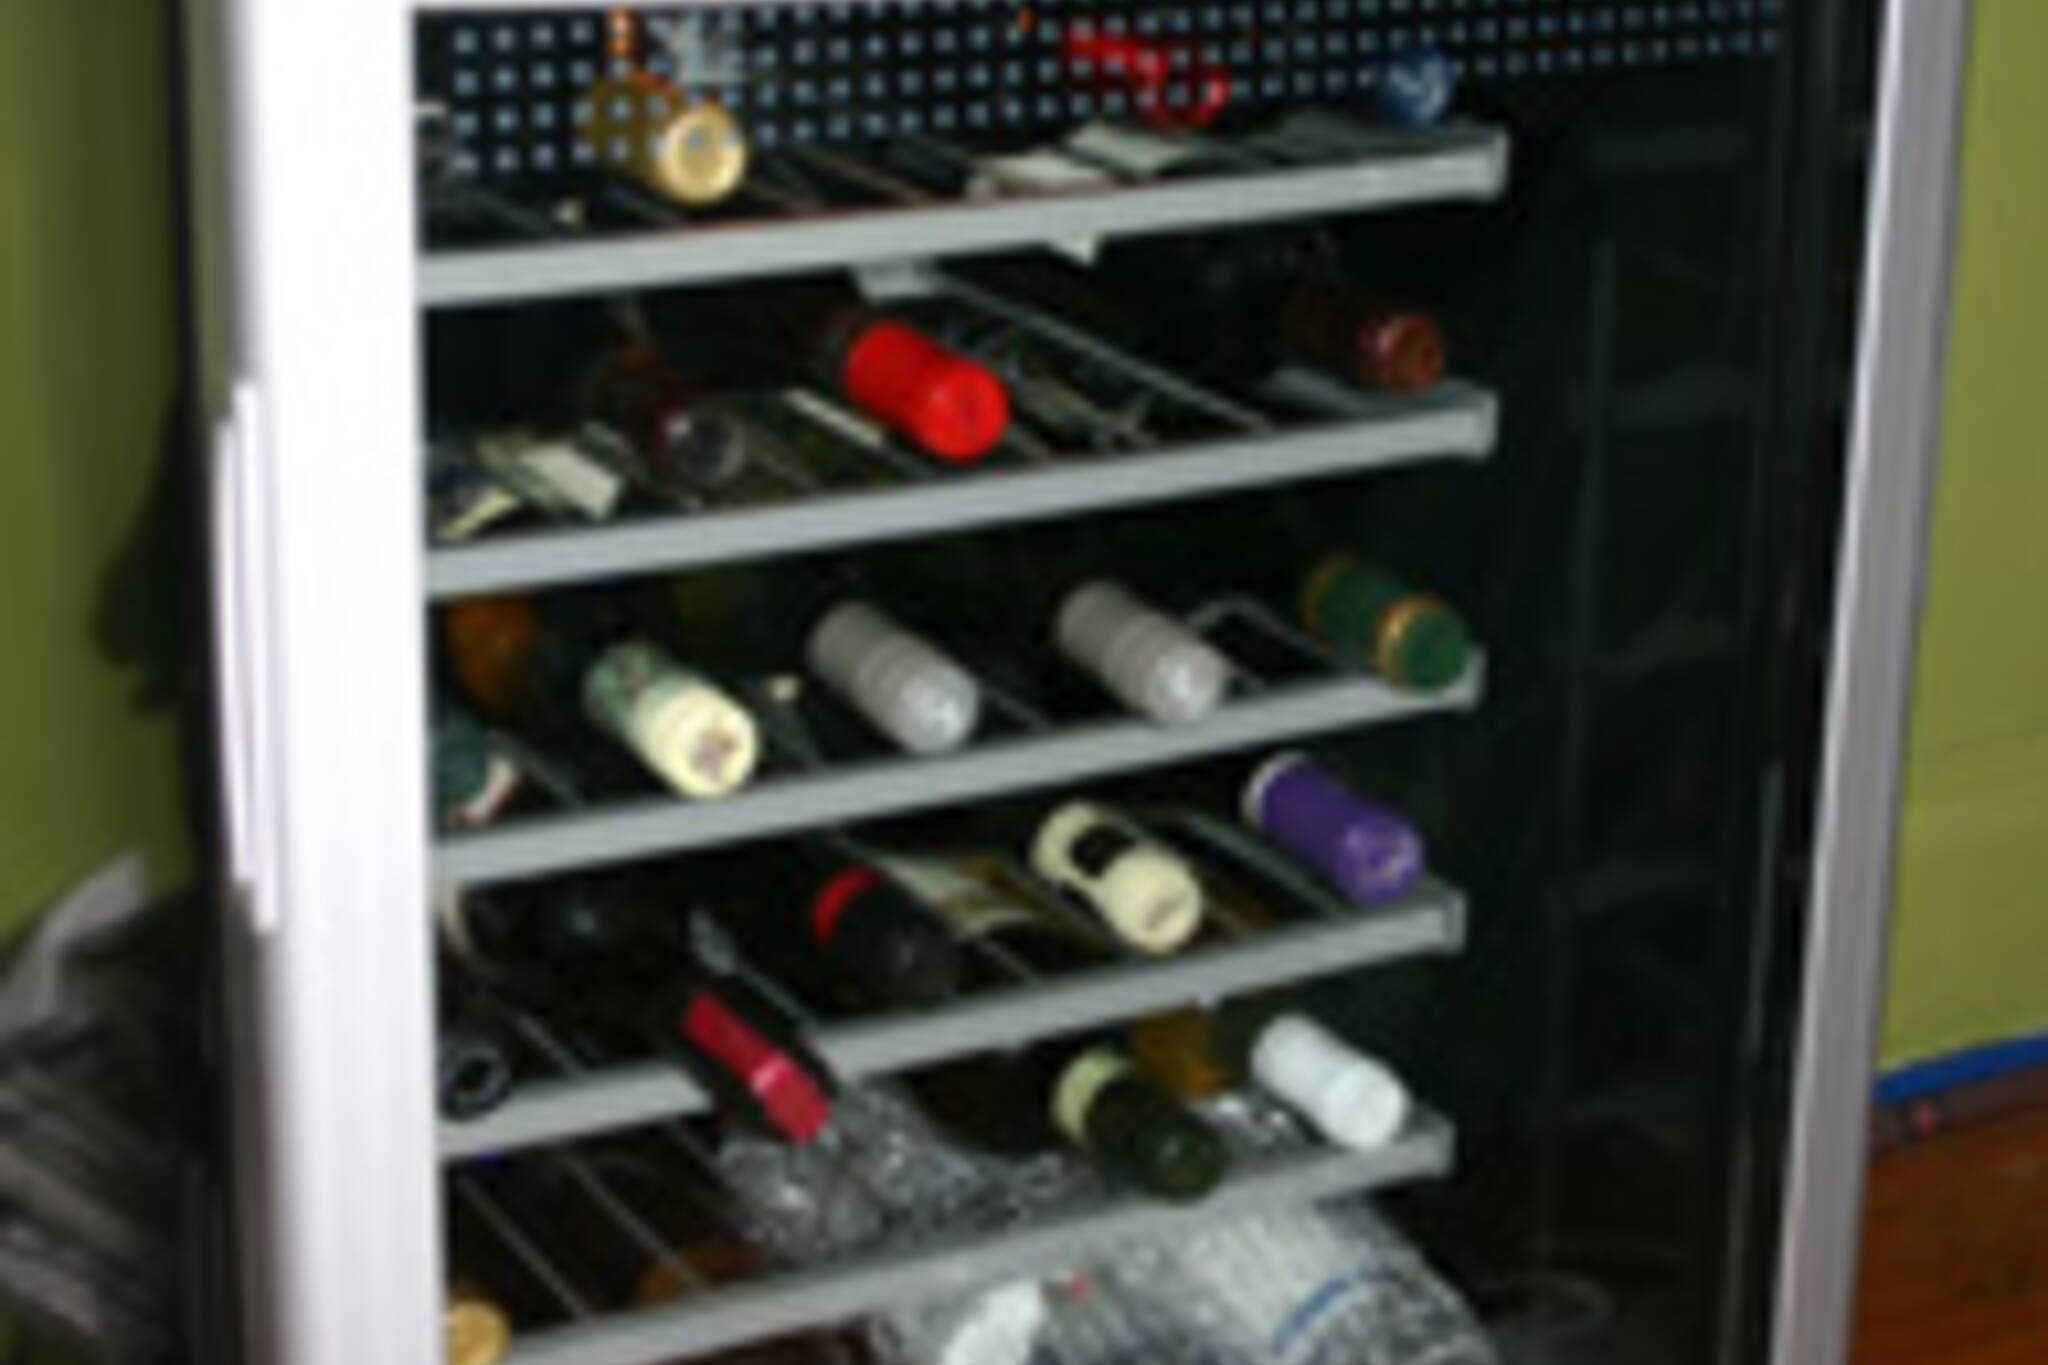 My new wine-fridge.  Now I can keep my bottles at optimum conditions.